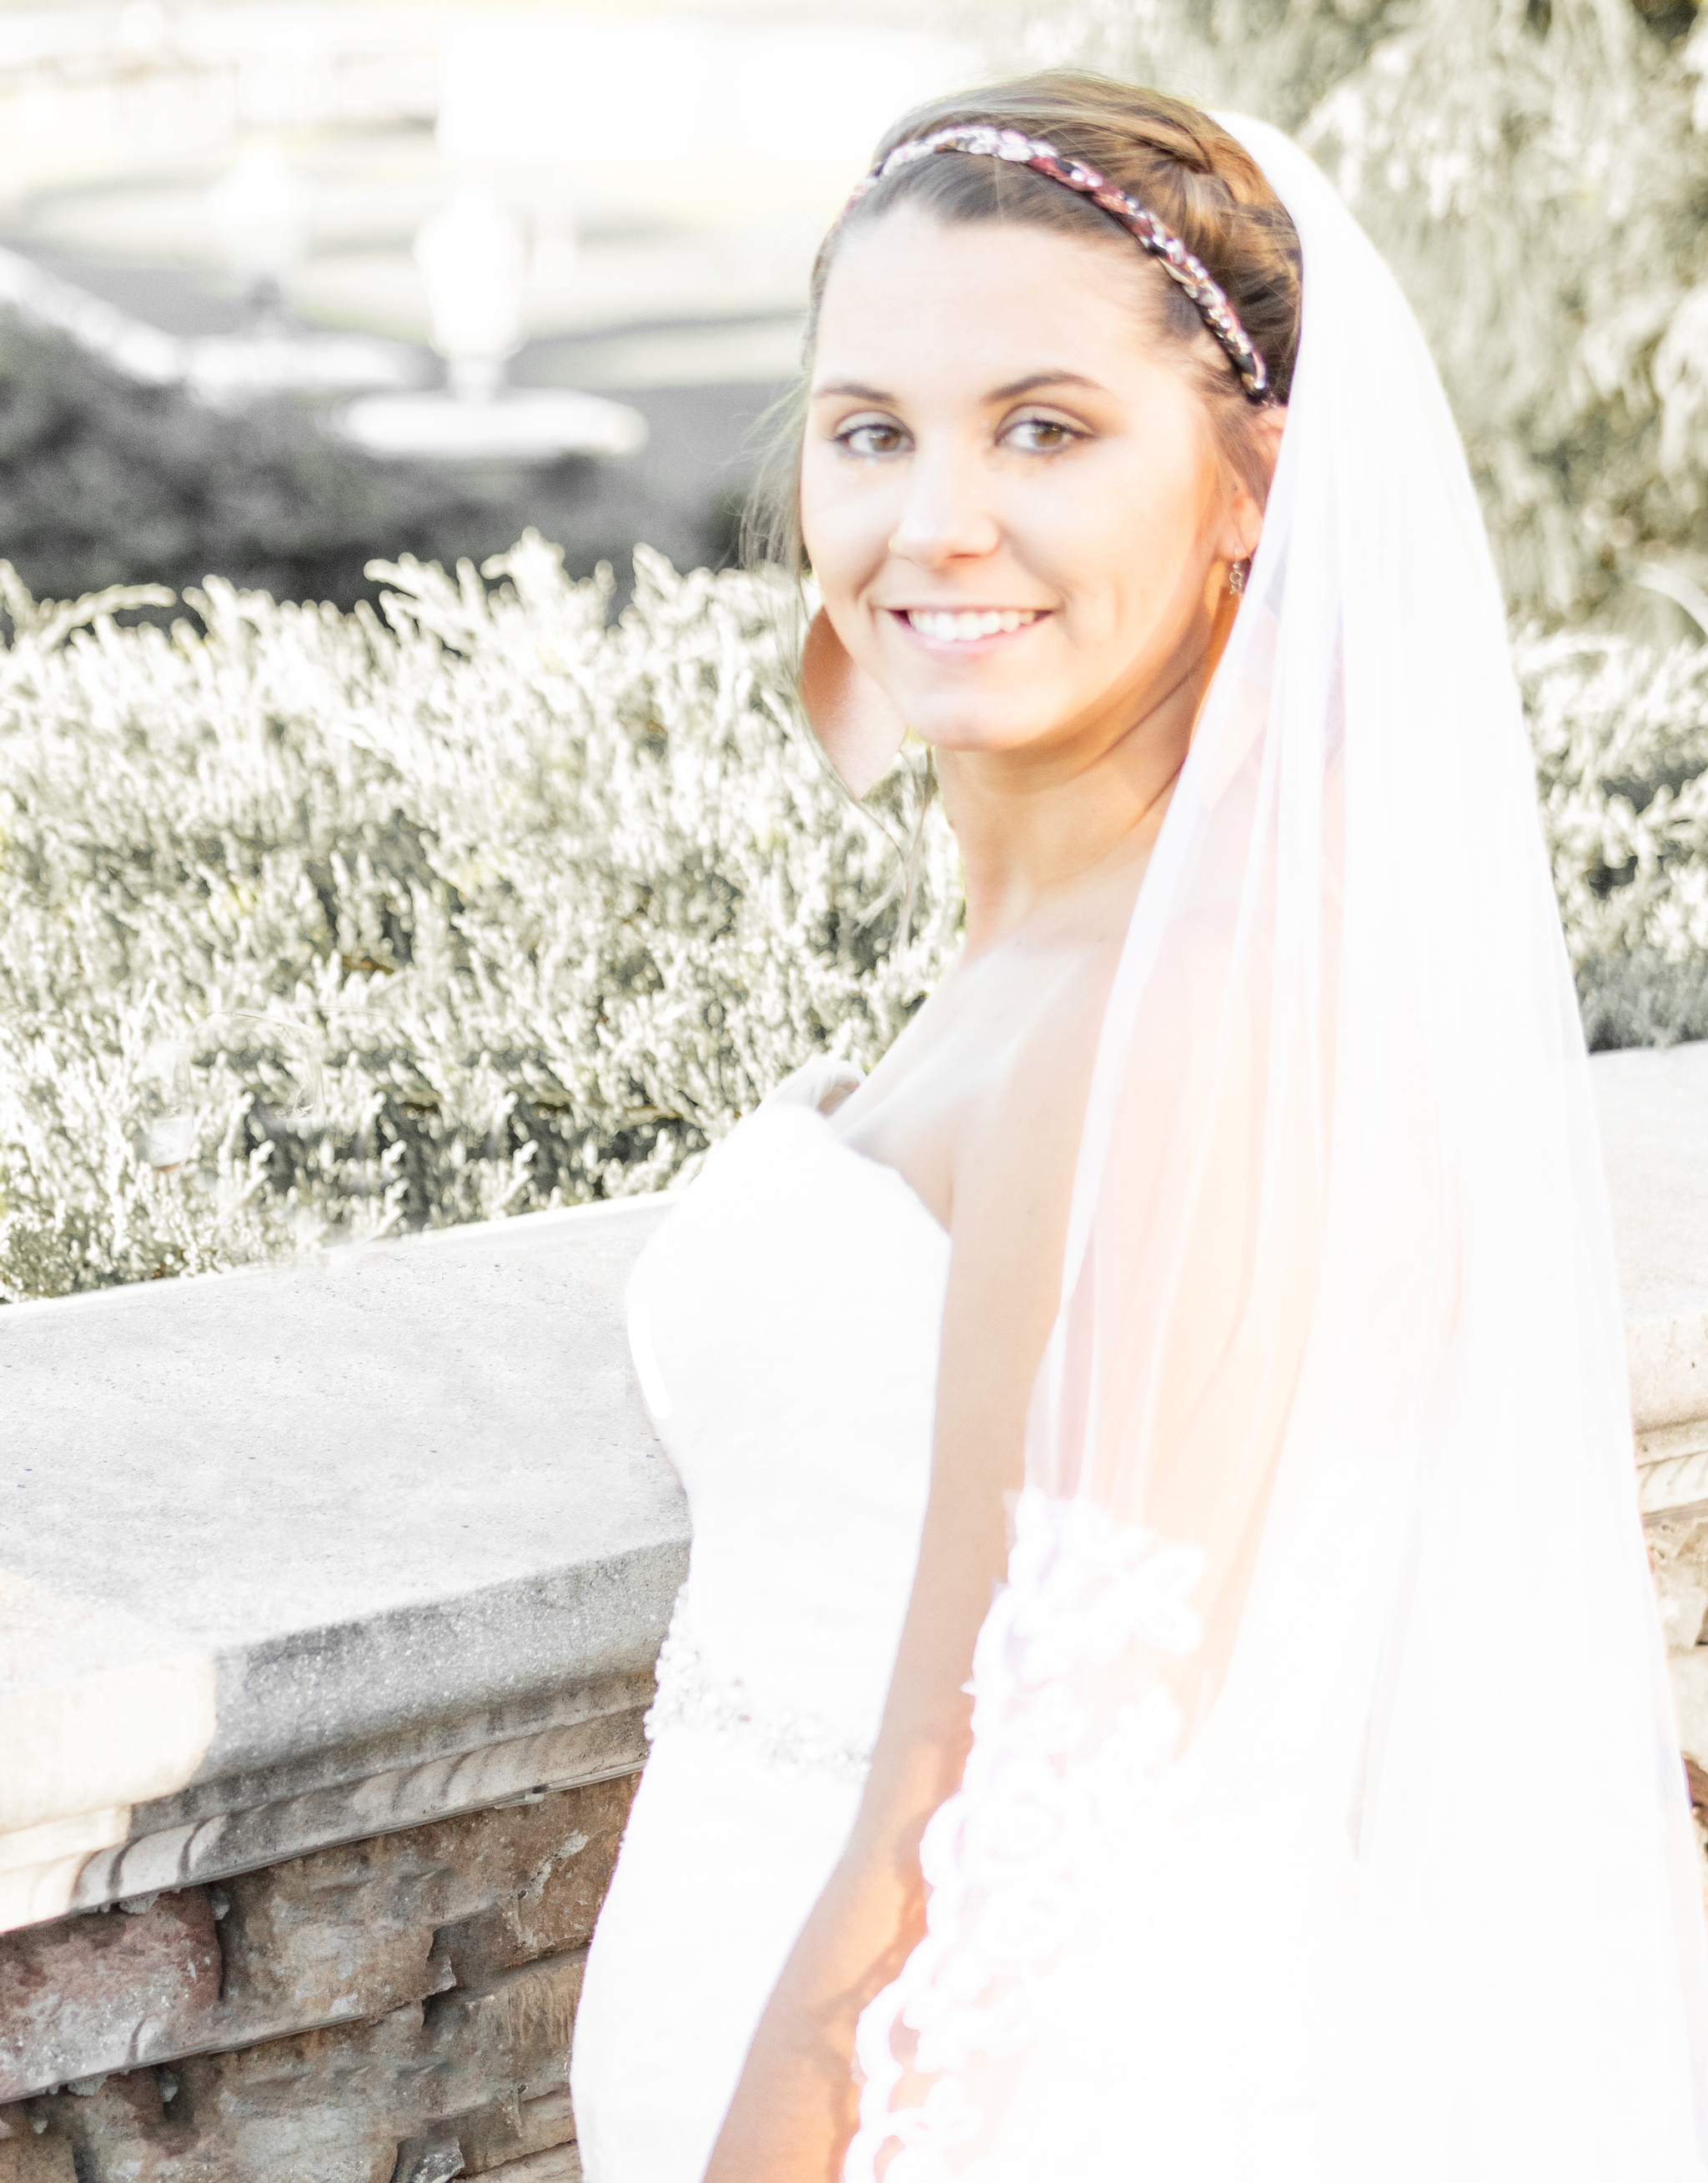 Childress Vineyard Bride Bride, Photography, Wedding dresses